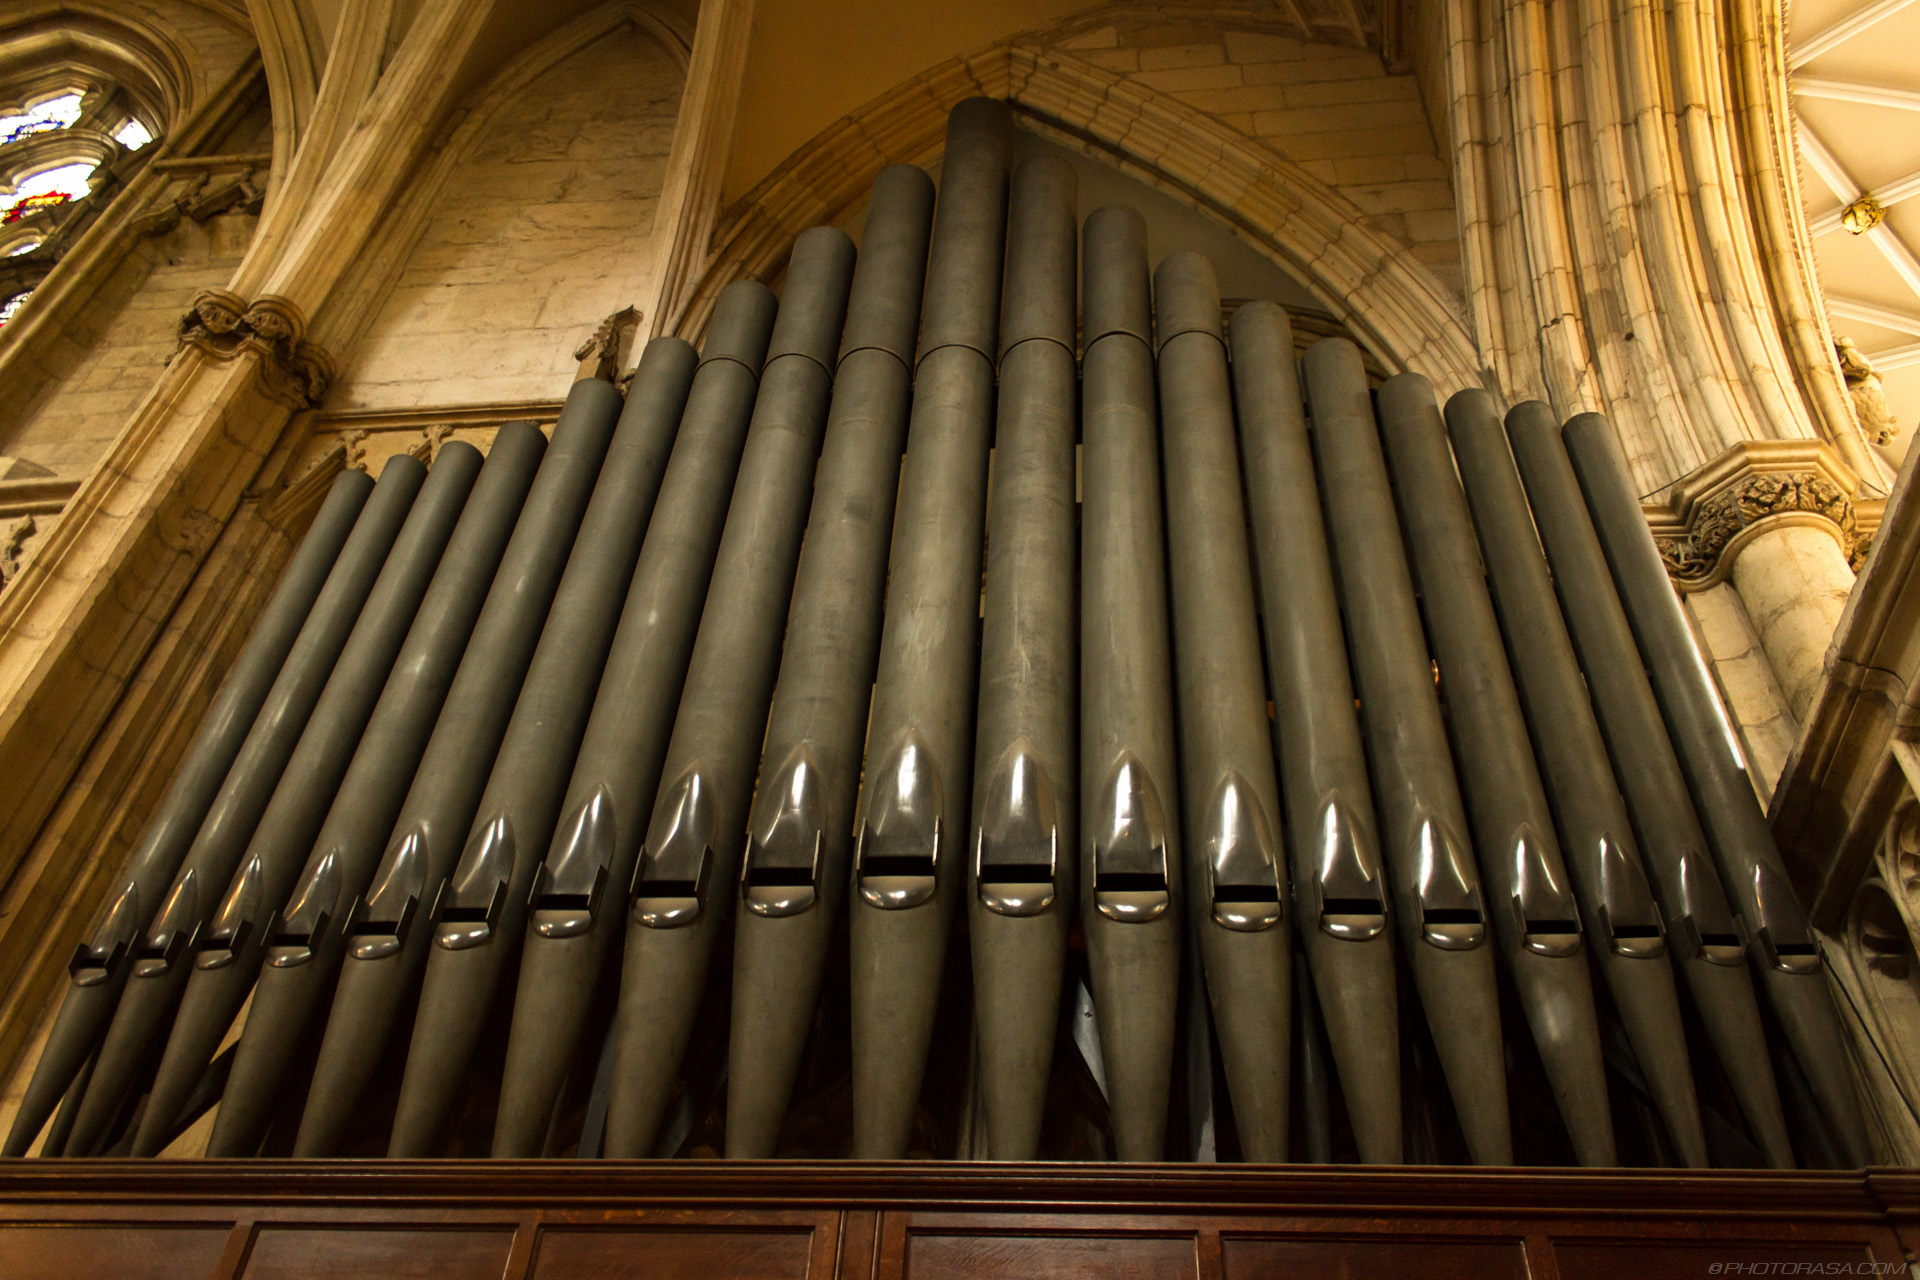 http://photorasa.com/places/yorkminster-cathedral/attachment/grey-pipes-from-the-old-organ/